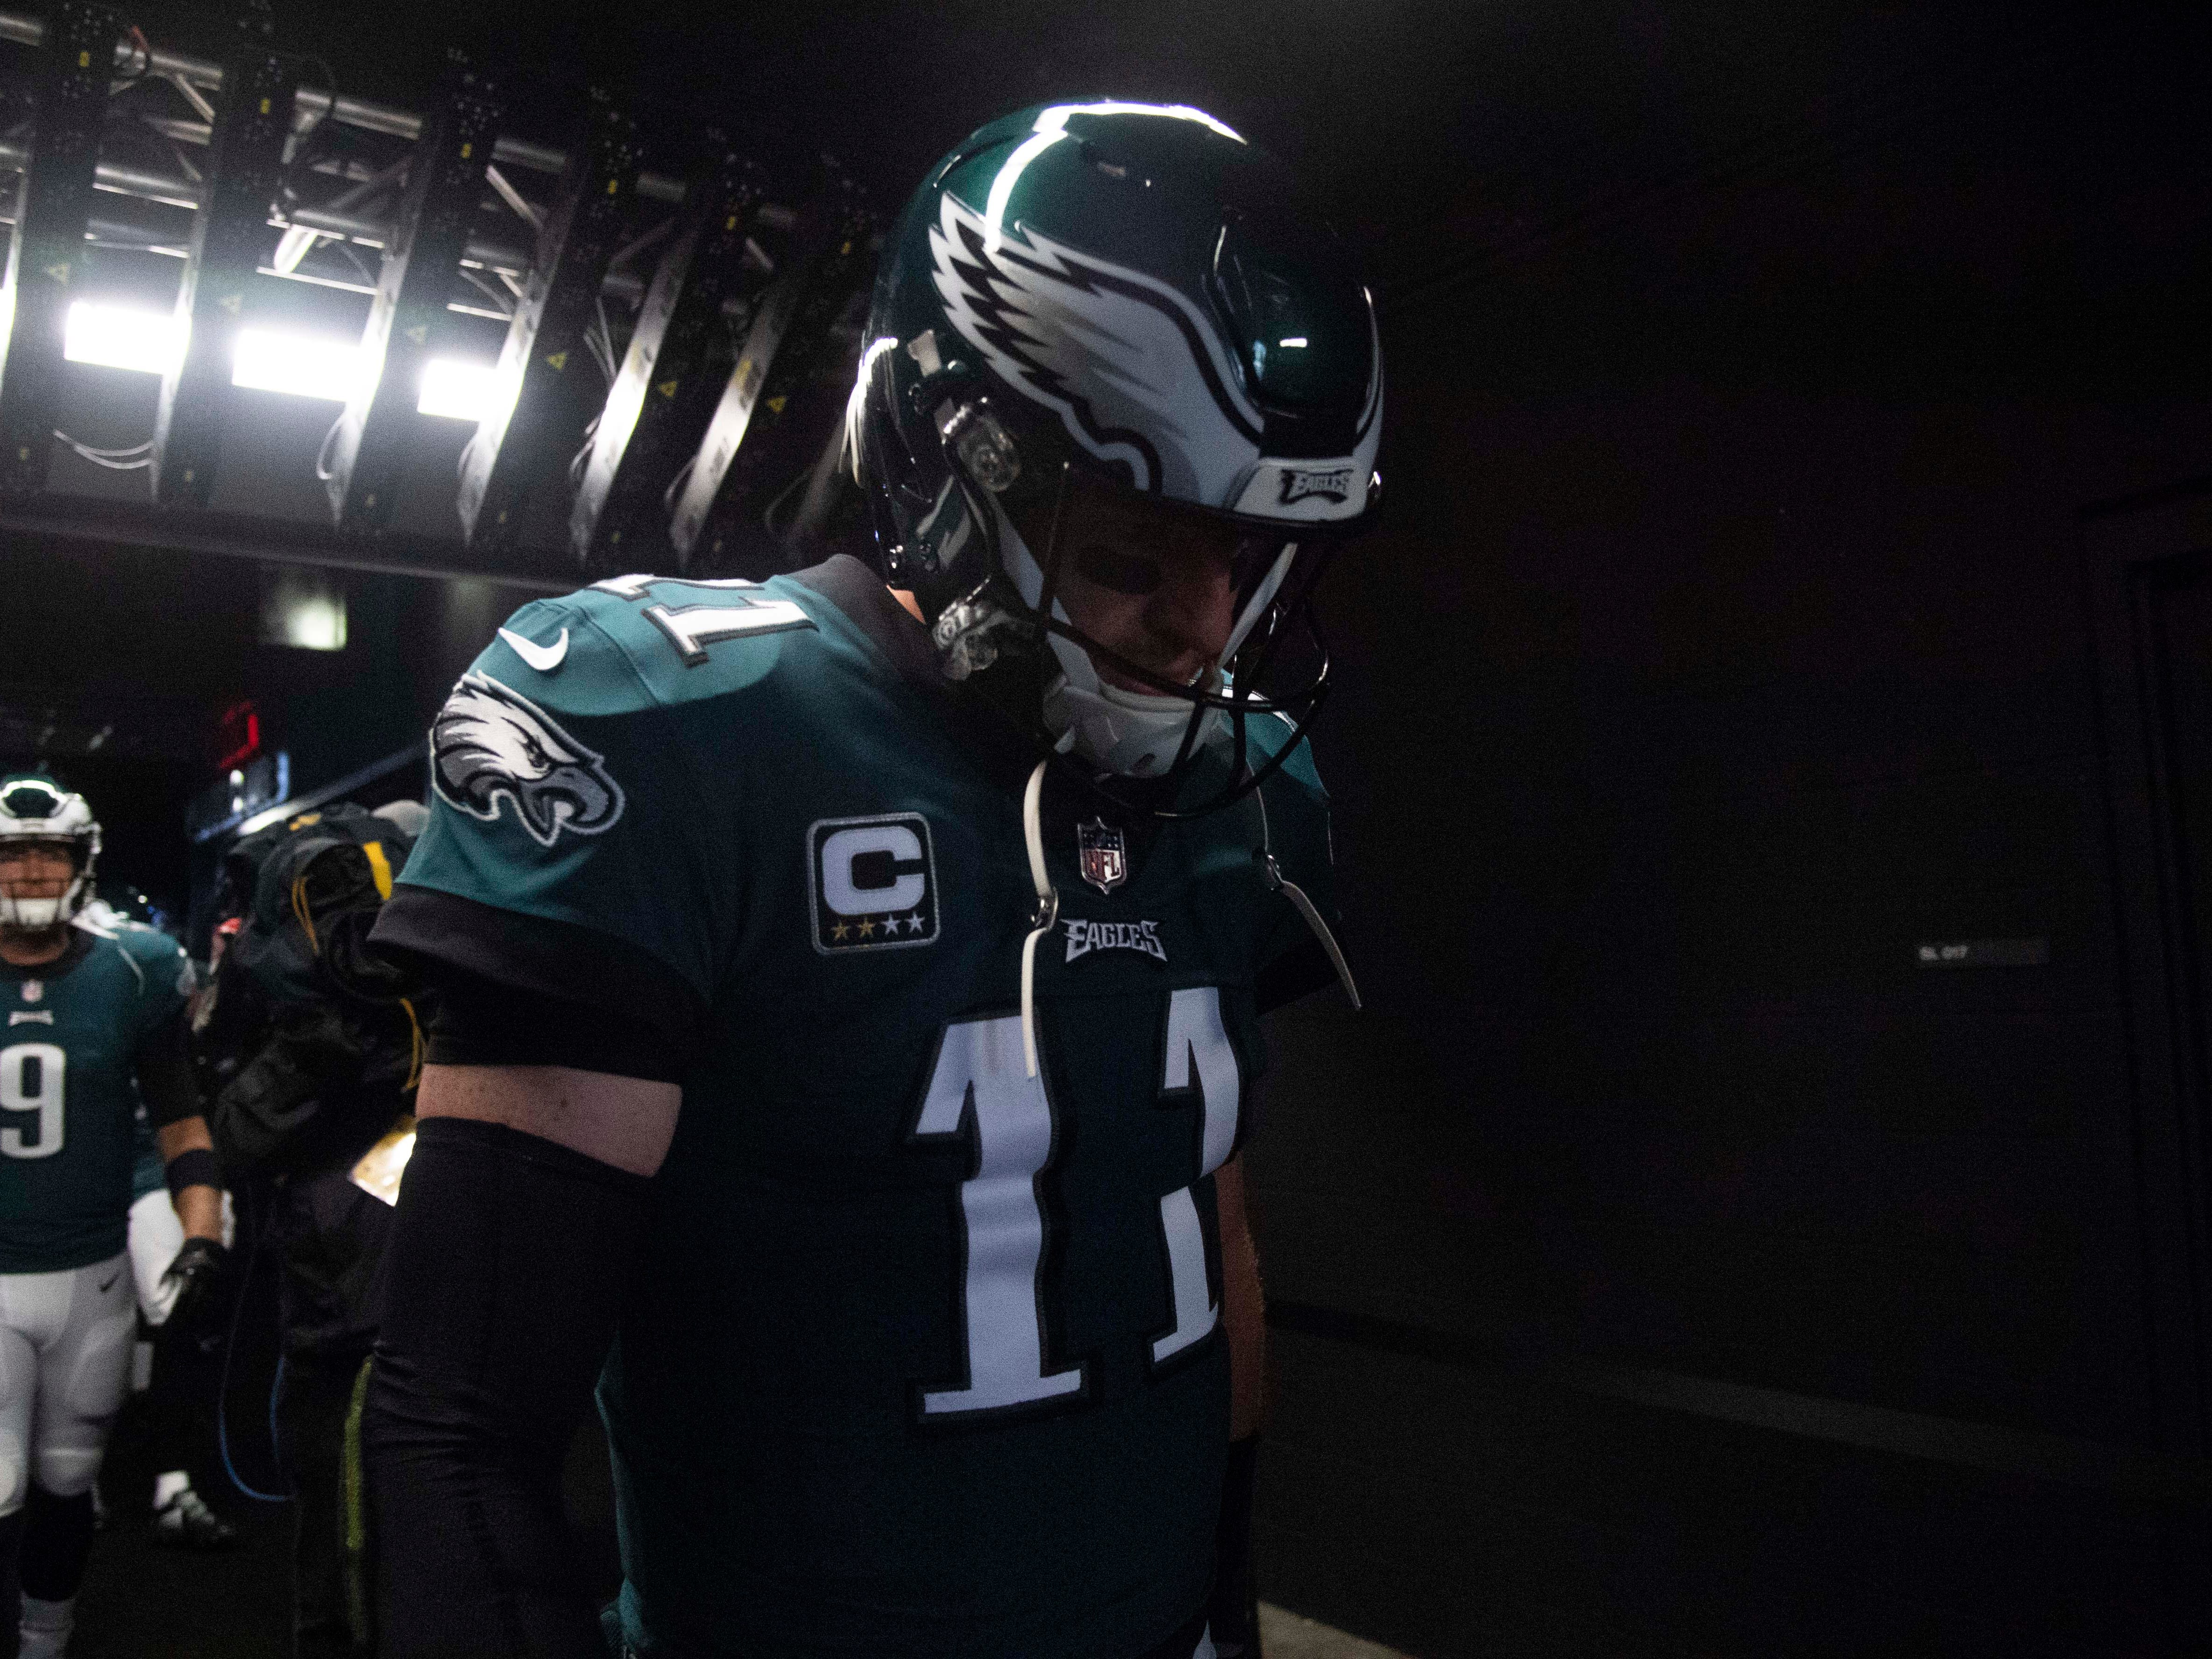 Philadelphia Eagles quarterback Carson Wentz walks out before the start of the game against the Indianapolis Colts at Lincoln Financial Field.